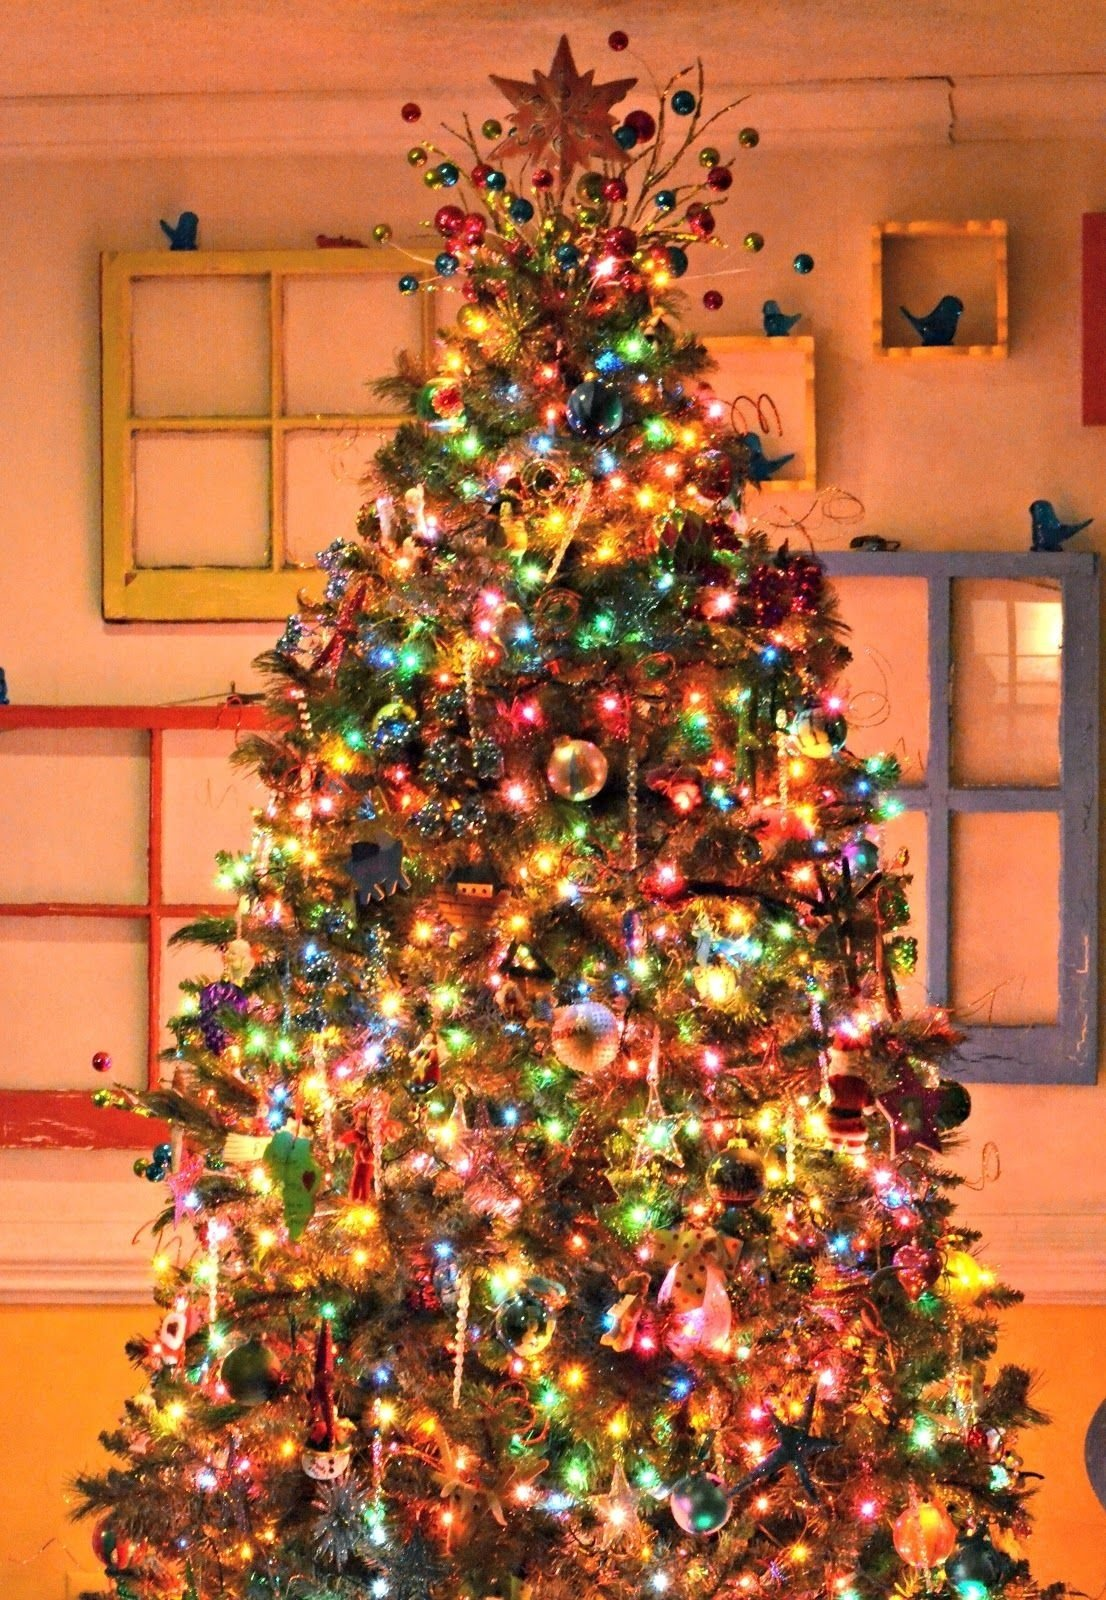 10 Stylish Christmas Tree Decorating Ideas For Kids the intentional home how to have a pretty christmas tree even when 2021